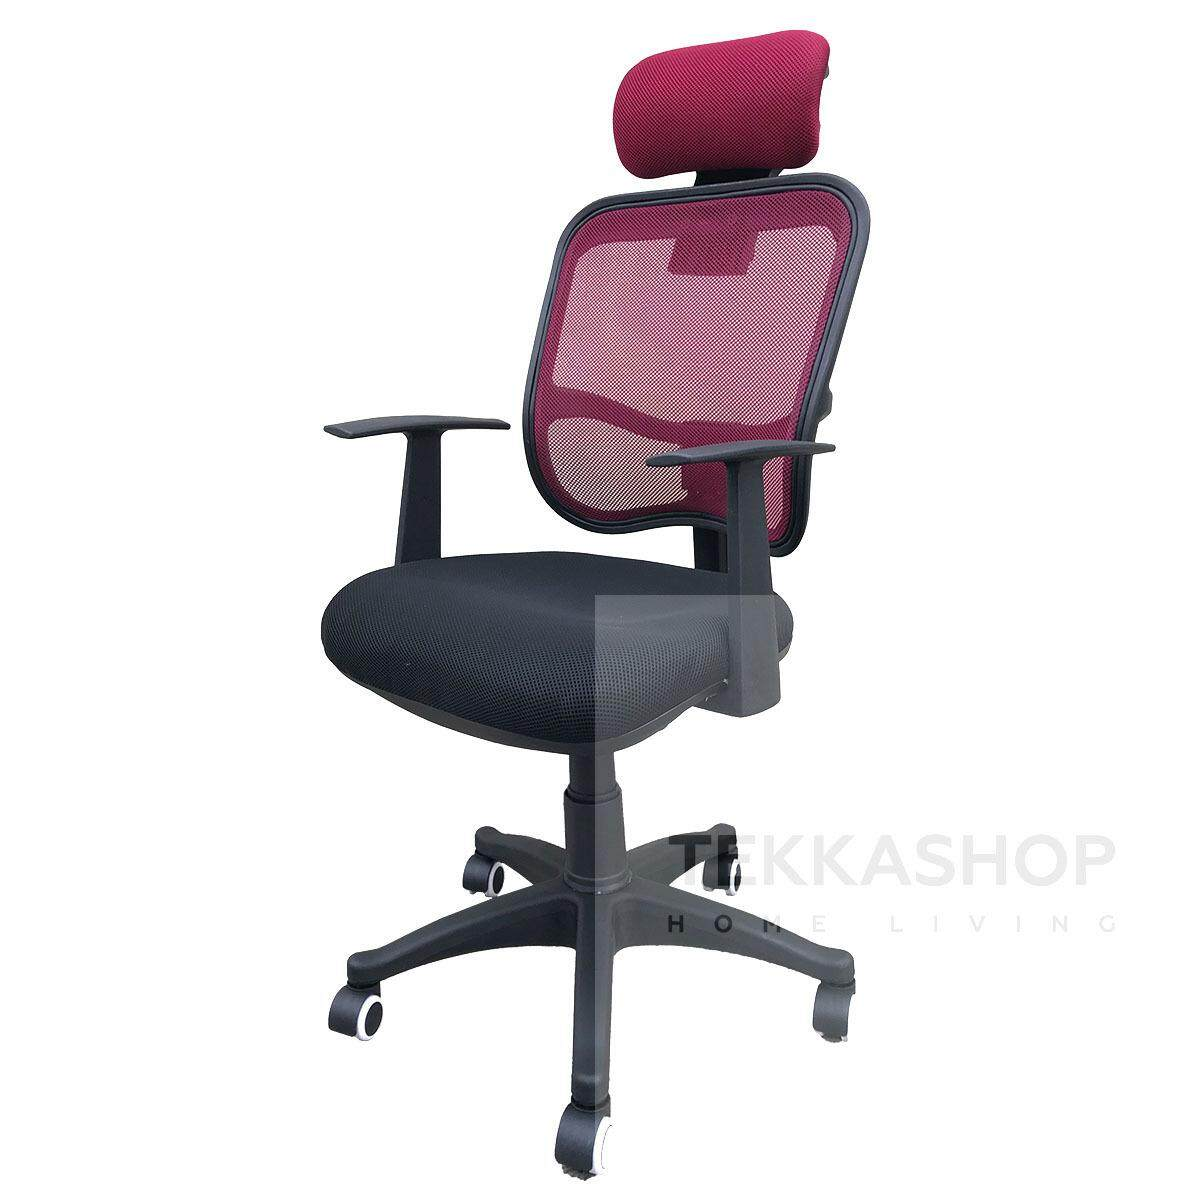 best service 31219 2f2bf Tekkashop KKMOC2037A Adjustable Seat Height Ergonomic High Back Swivel Mesh  Comfortable Home Office Chair, Red